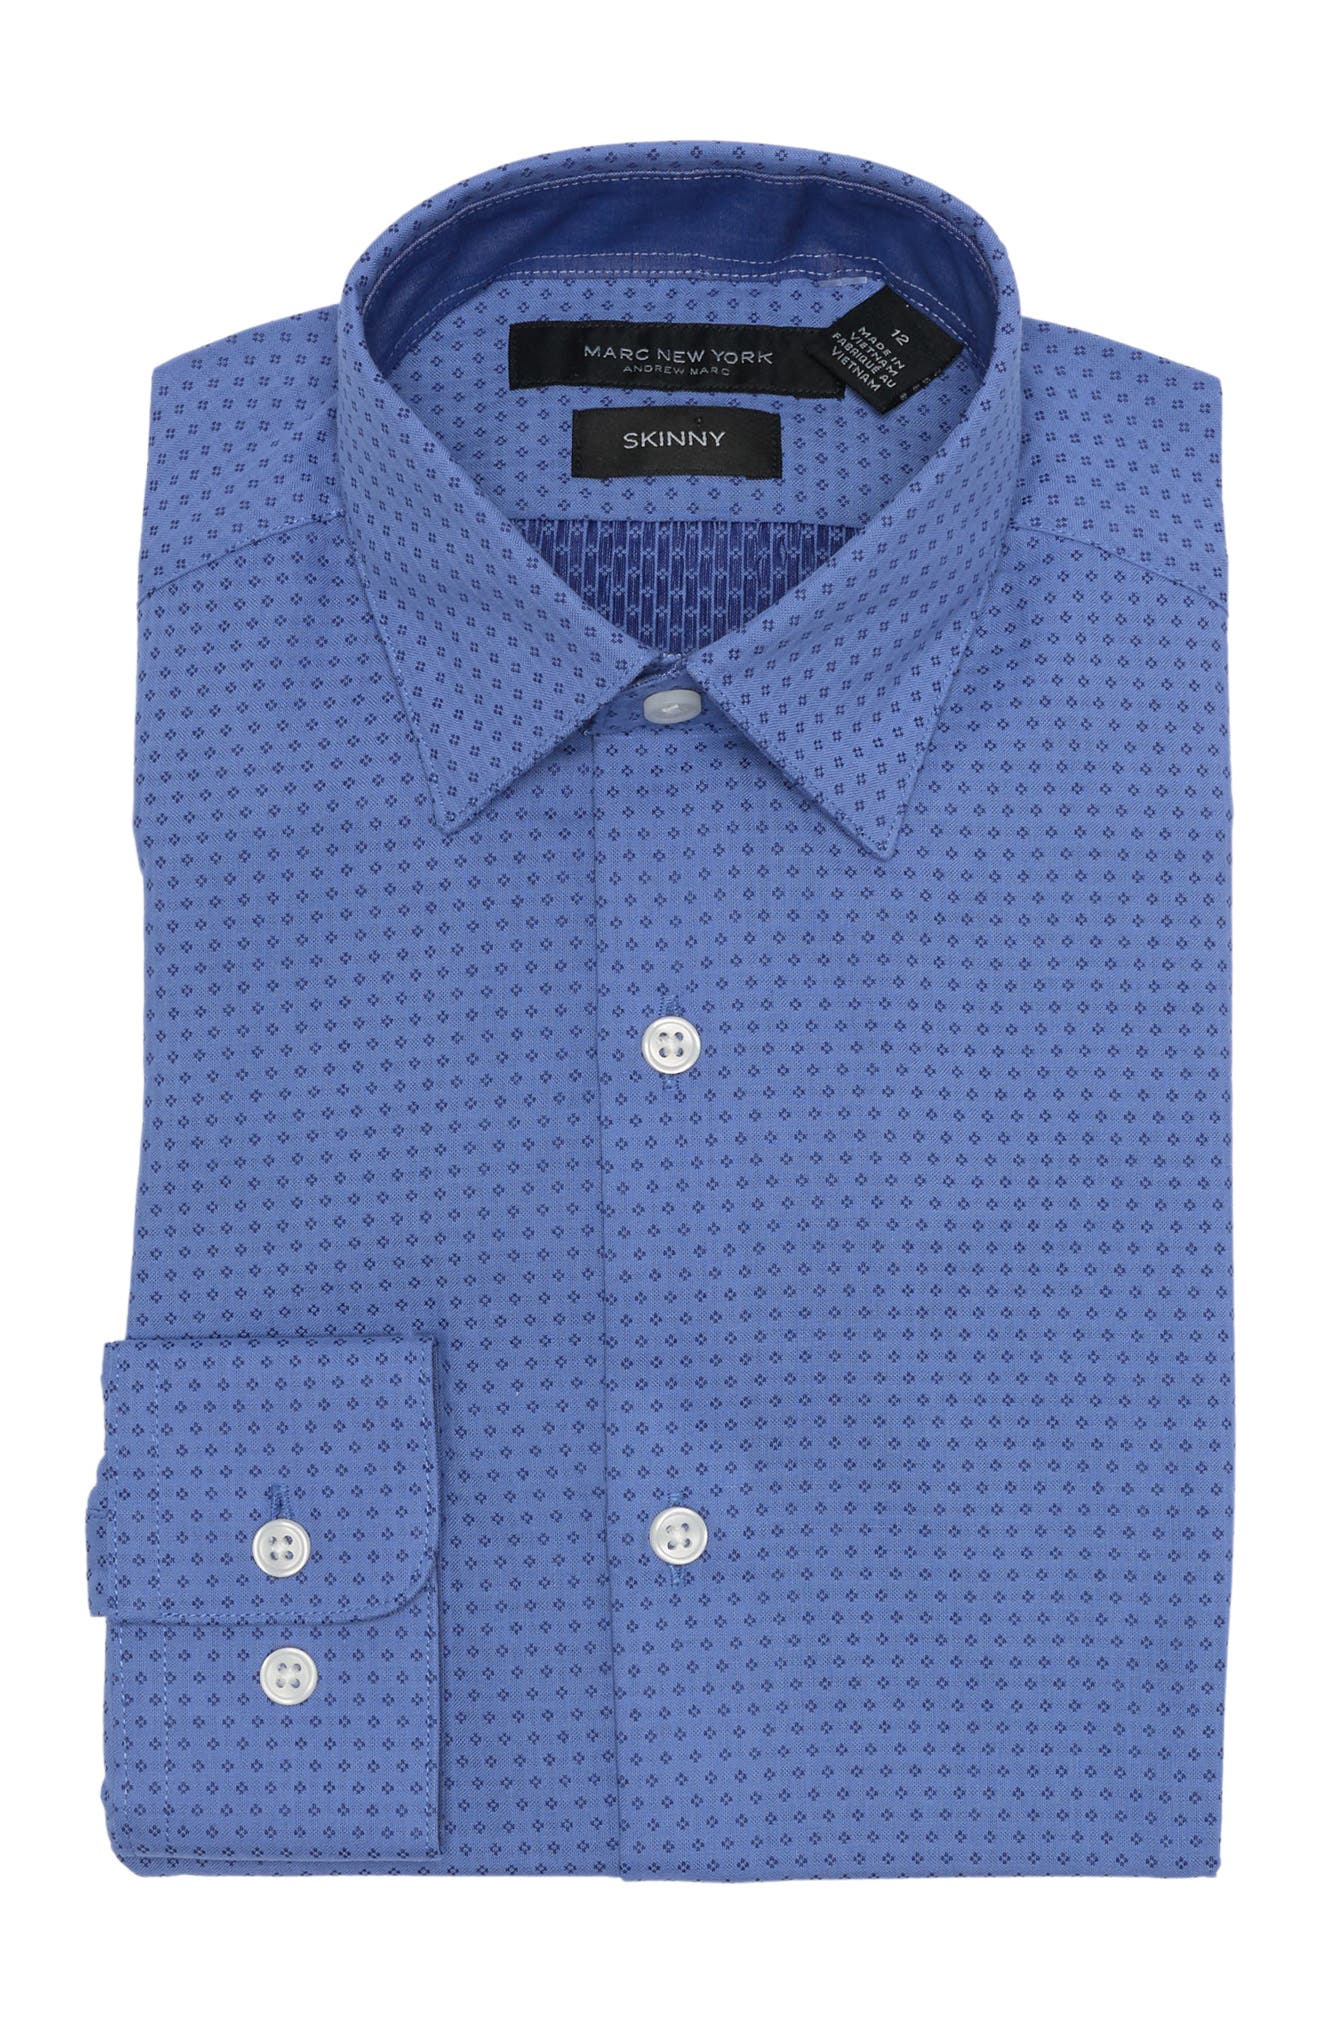 Image of Andrew Marc Blue Micro Print Woven Dress Shirt